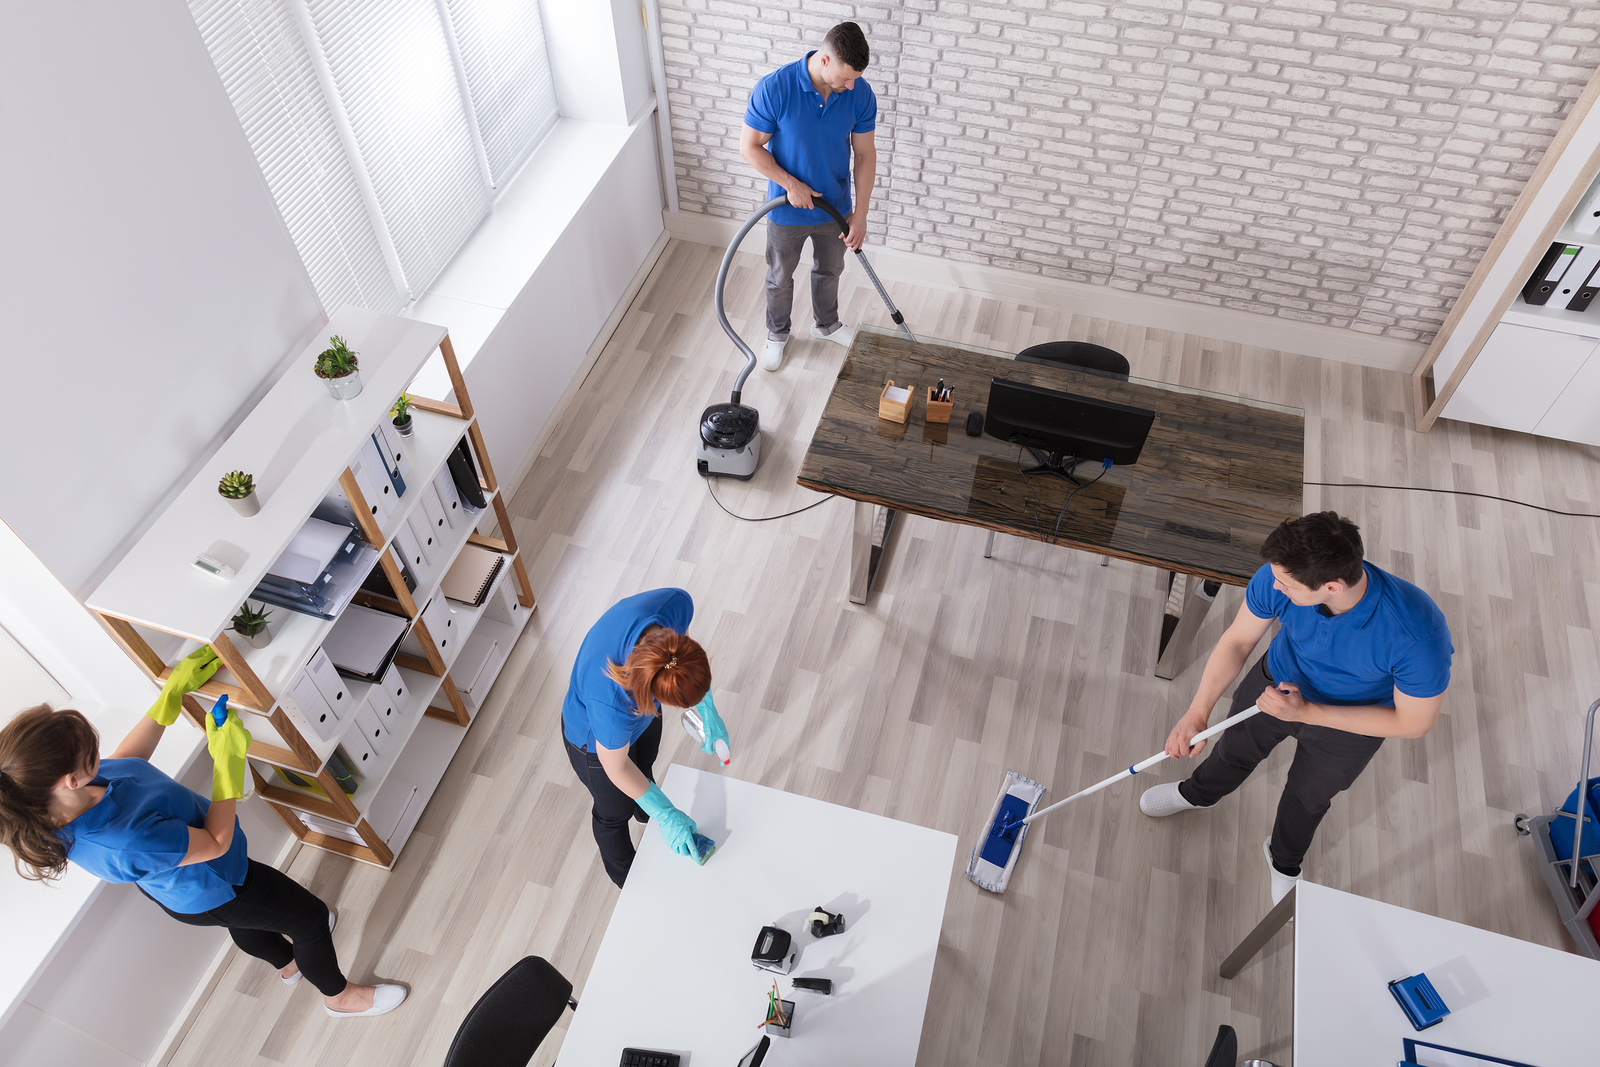 Make Life Easier by Hiring Cleaning Service Nashville and Stay Healthy